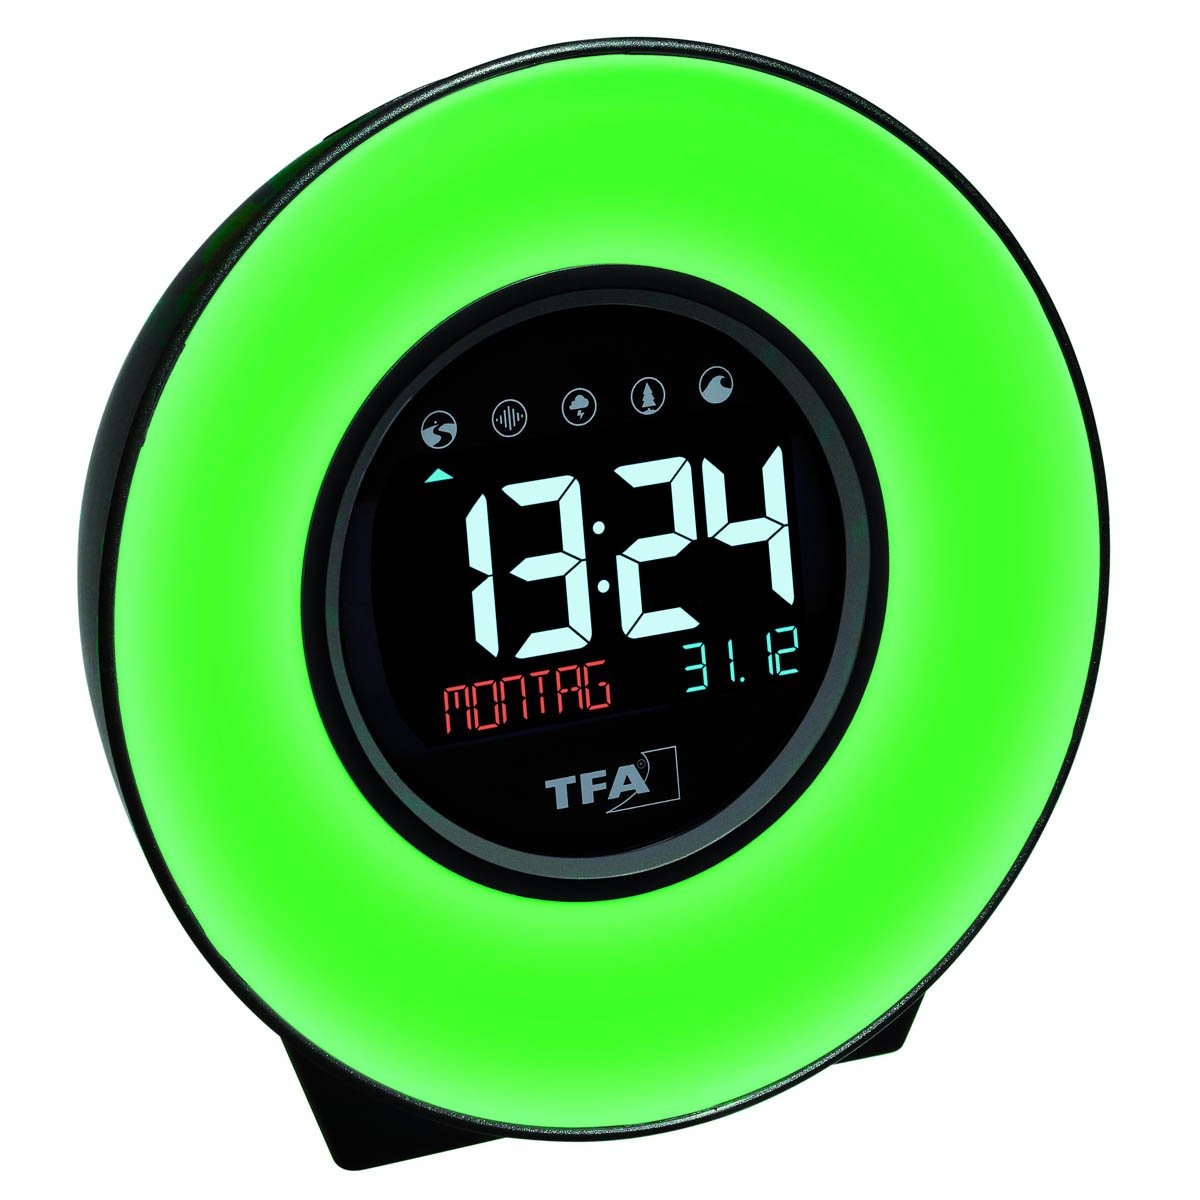 TFA Germany Dexter Mood Light Alarm Clock Changing Colours 14cm 60.2023.02 1